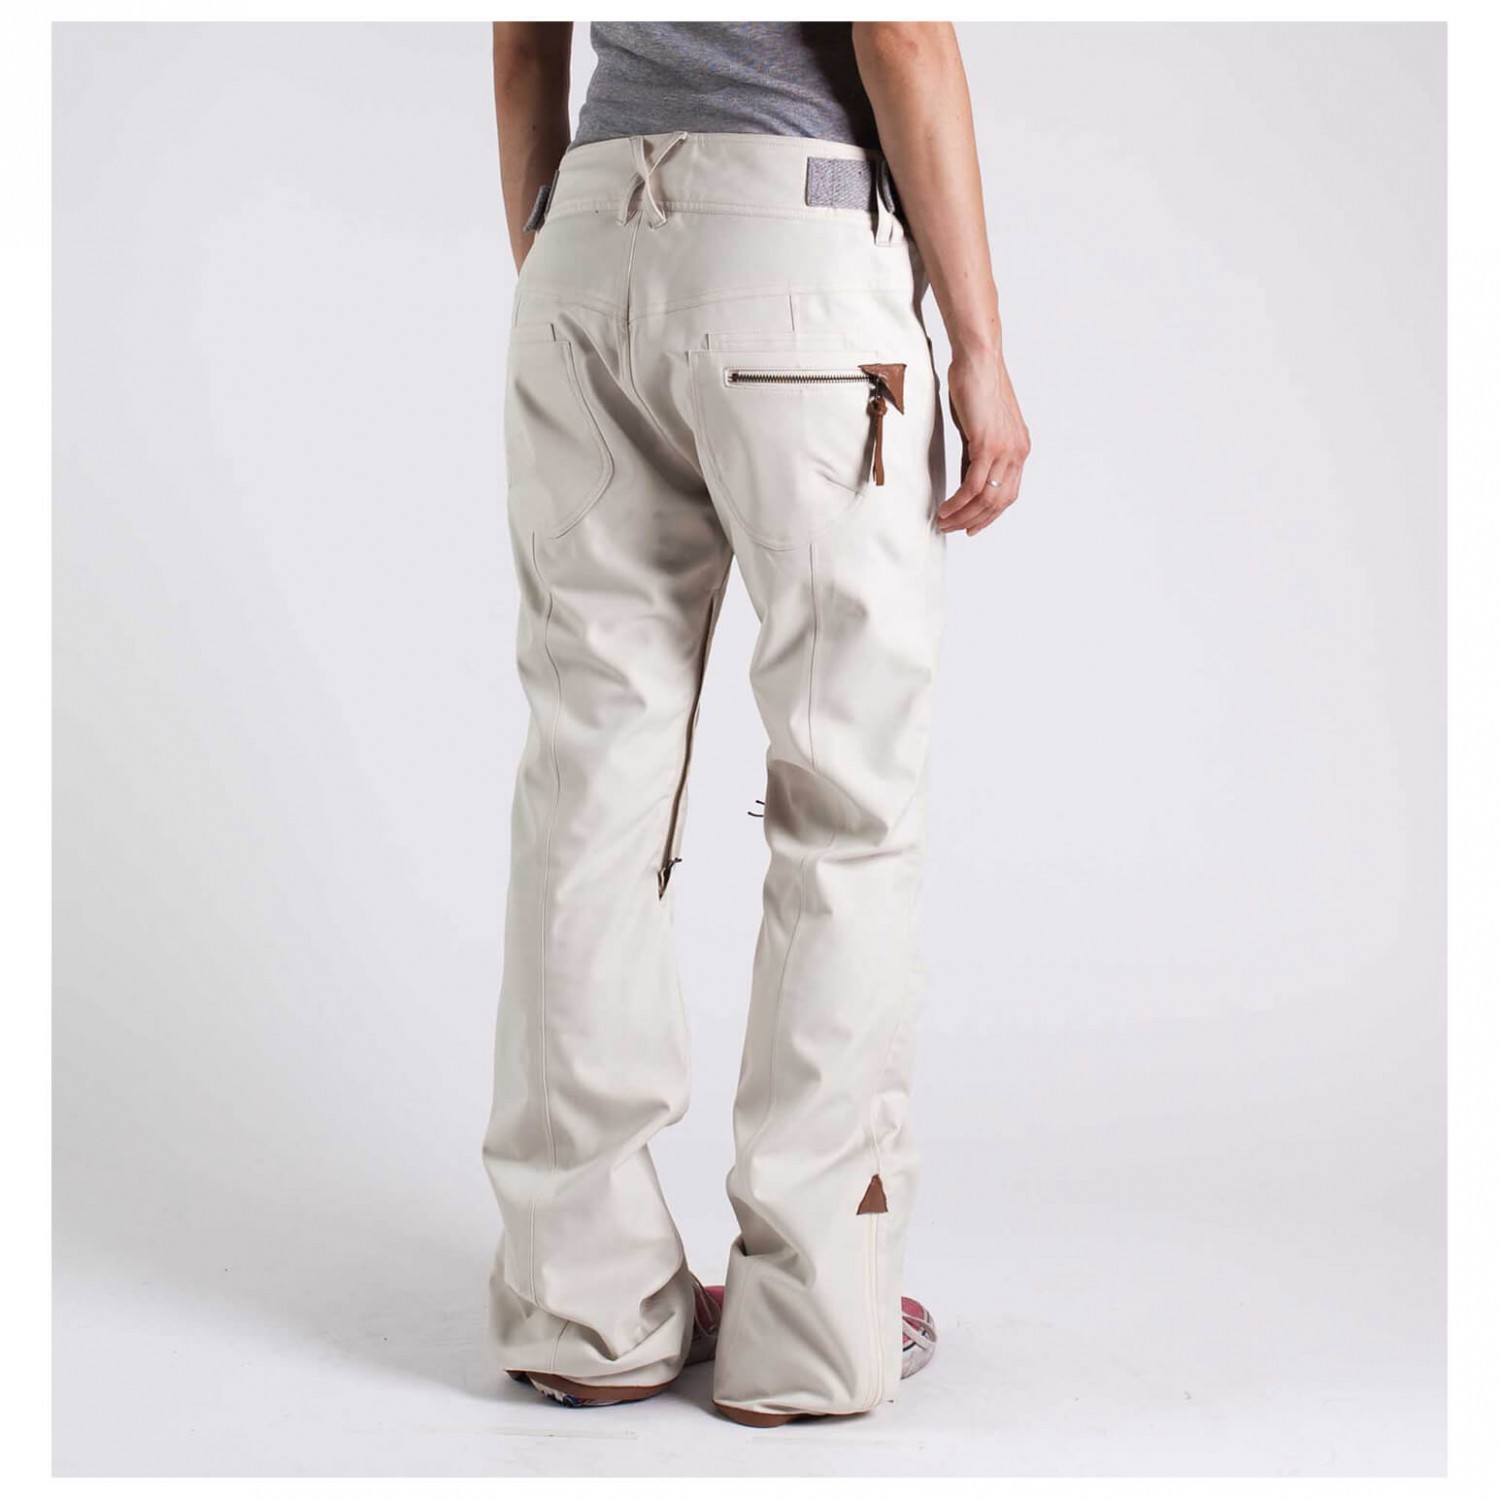 6335a4d8e Holden Cara Pant Stretch Twill - Ski Trousers Women's | Buy online ...